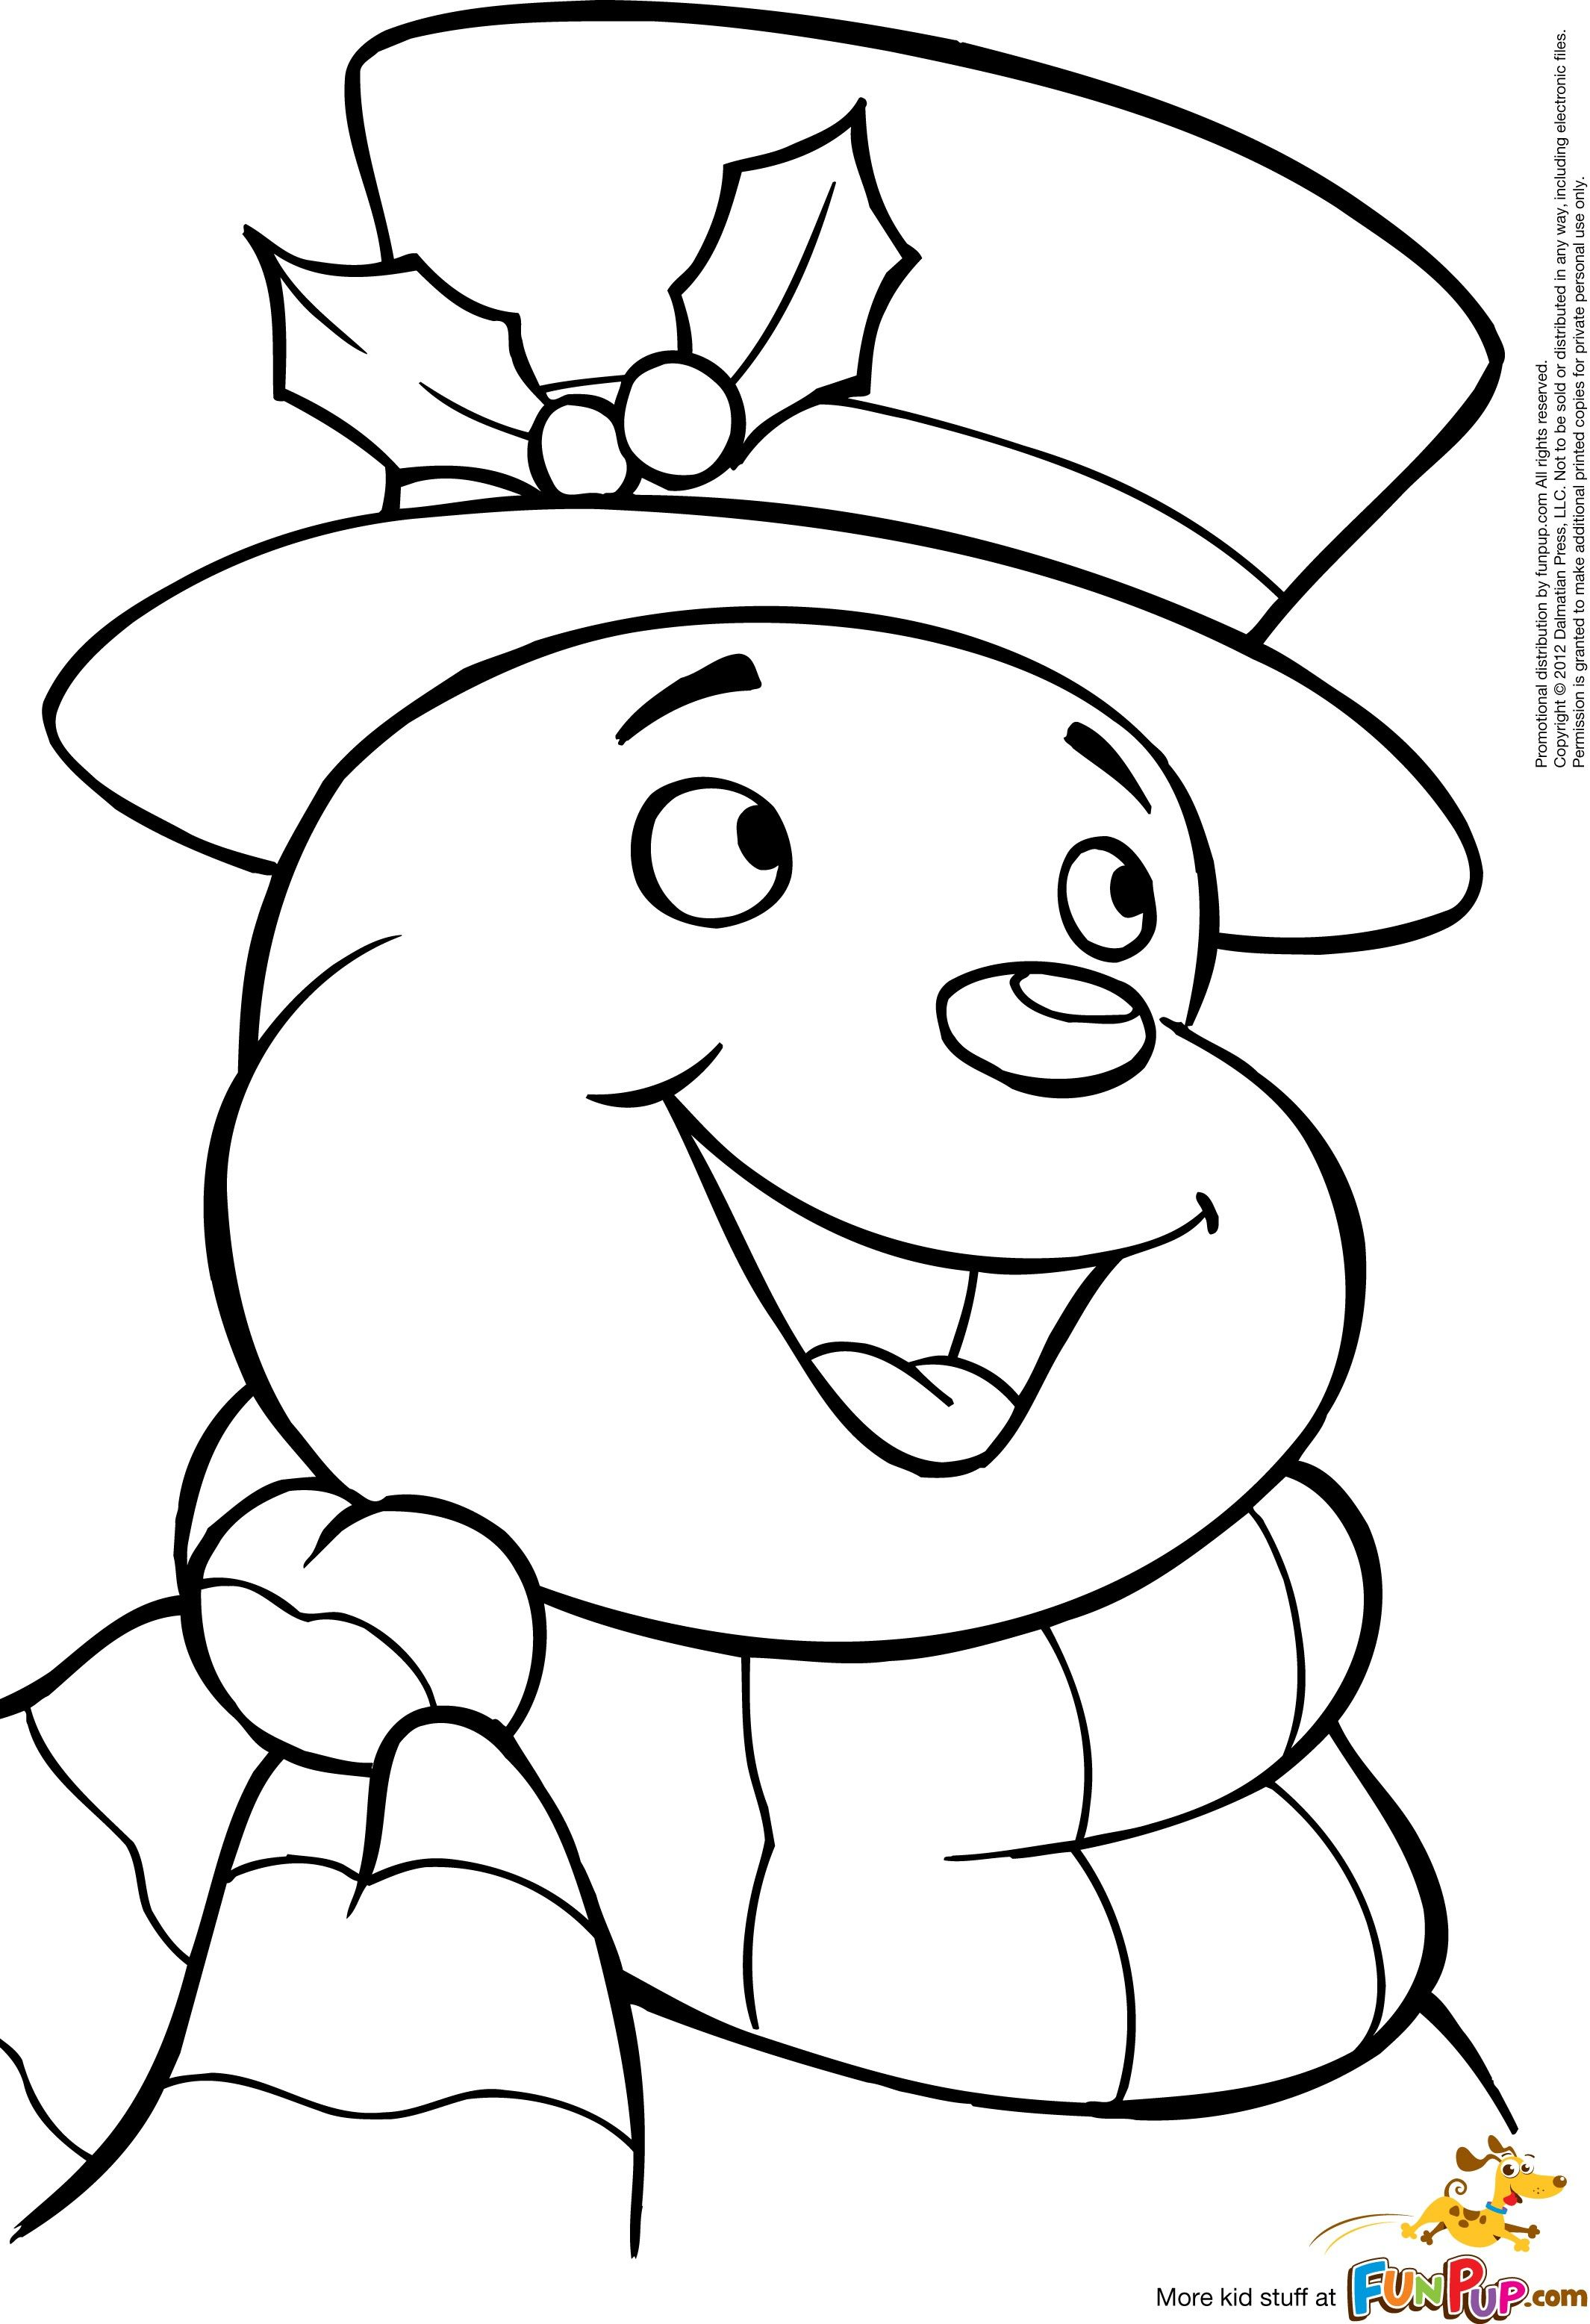 snowman coloring pages - photo#31